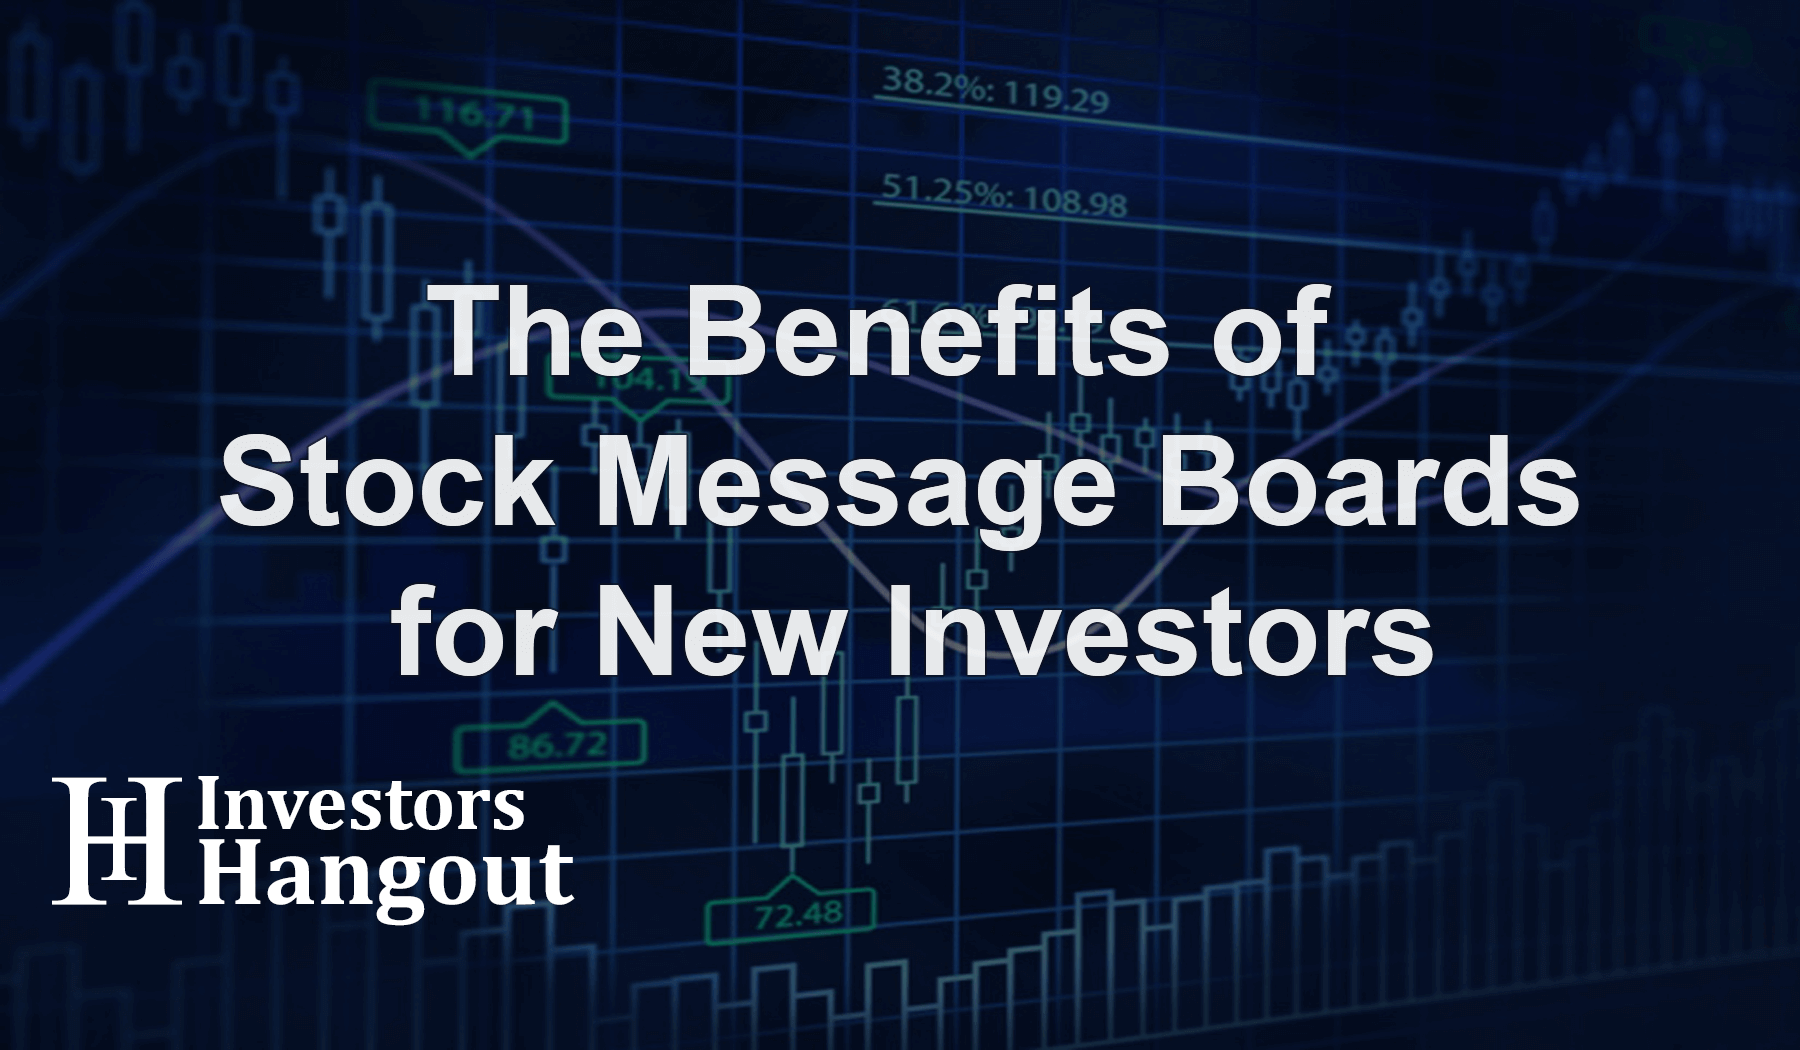 The Benefits of Stock Message Boards for New Investors